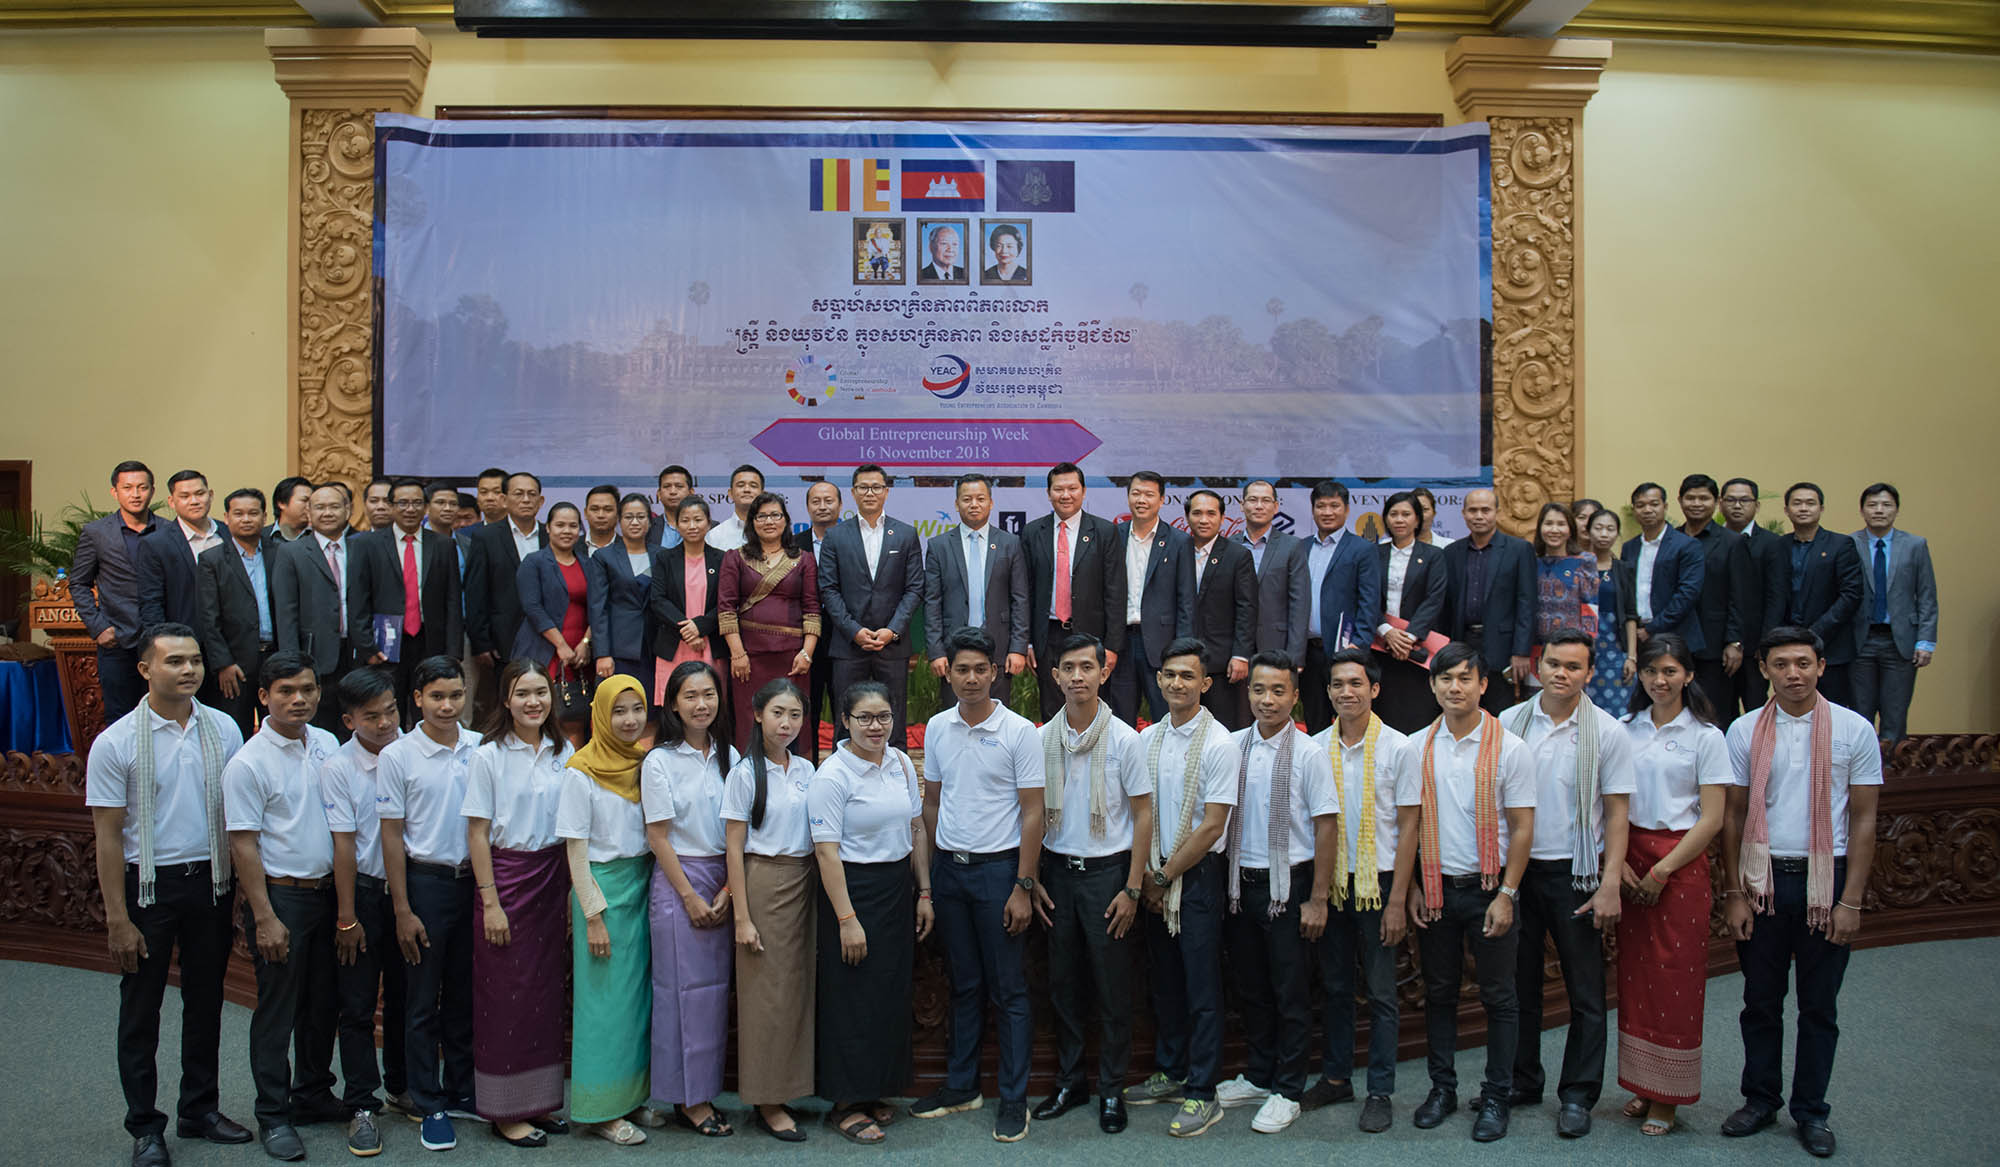 Global Entrepreneur week (GEW) in Siem Reap